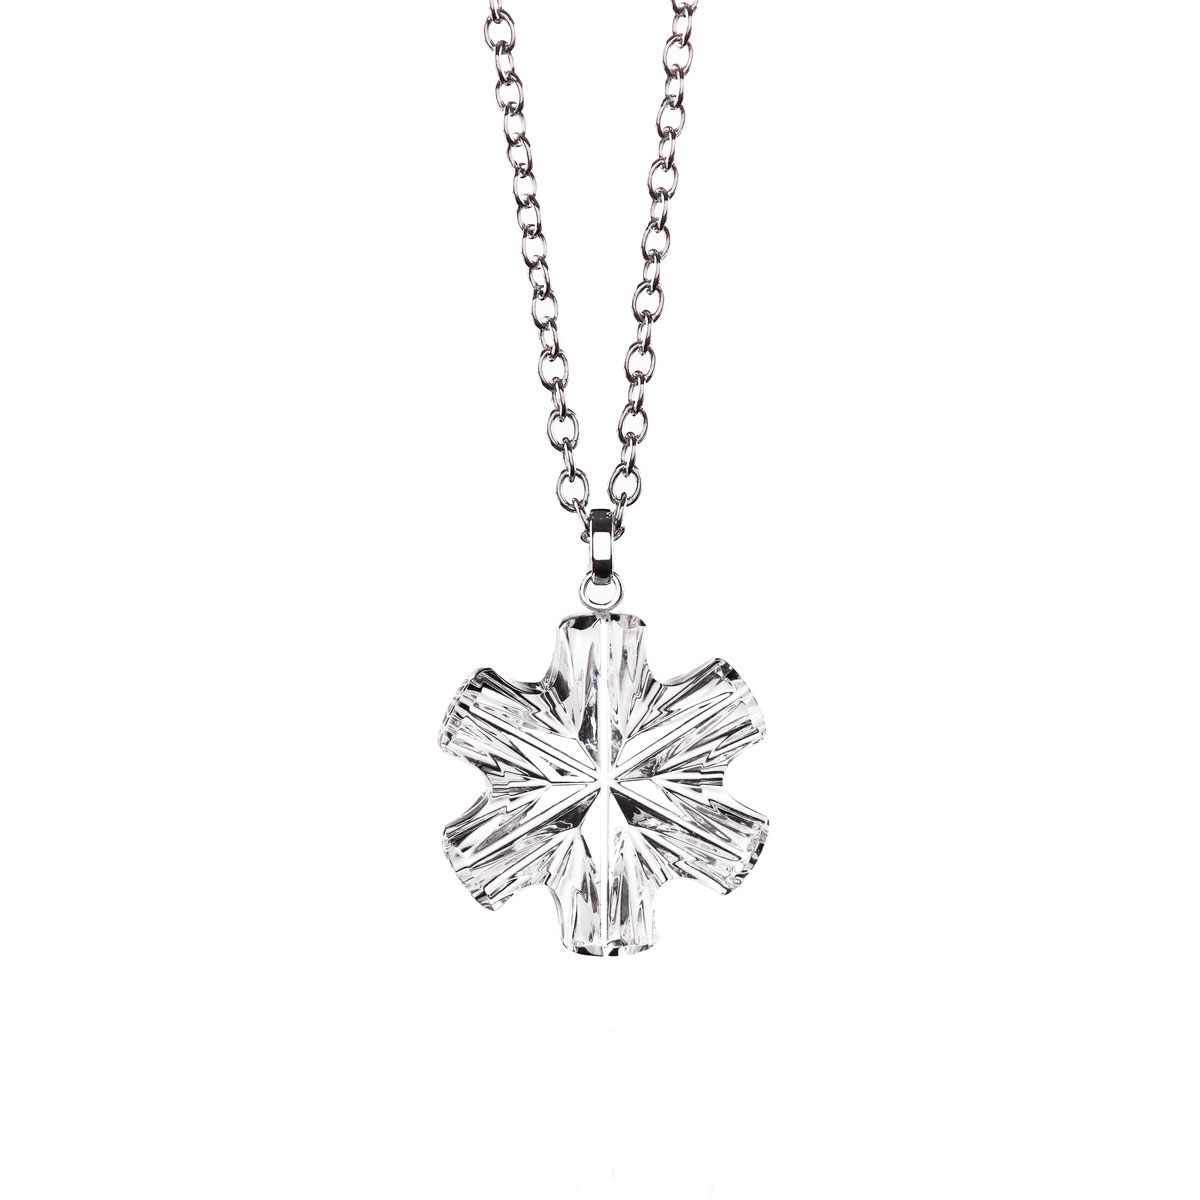 Cashs Ireland, Crystal Snowflake Pendant Necklace, Small